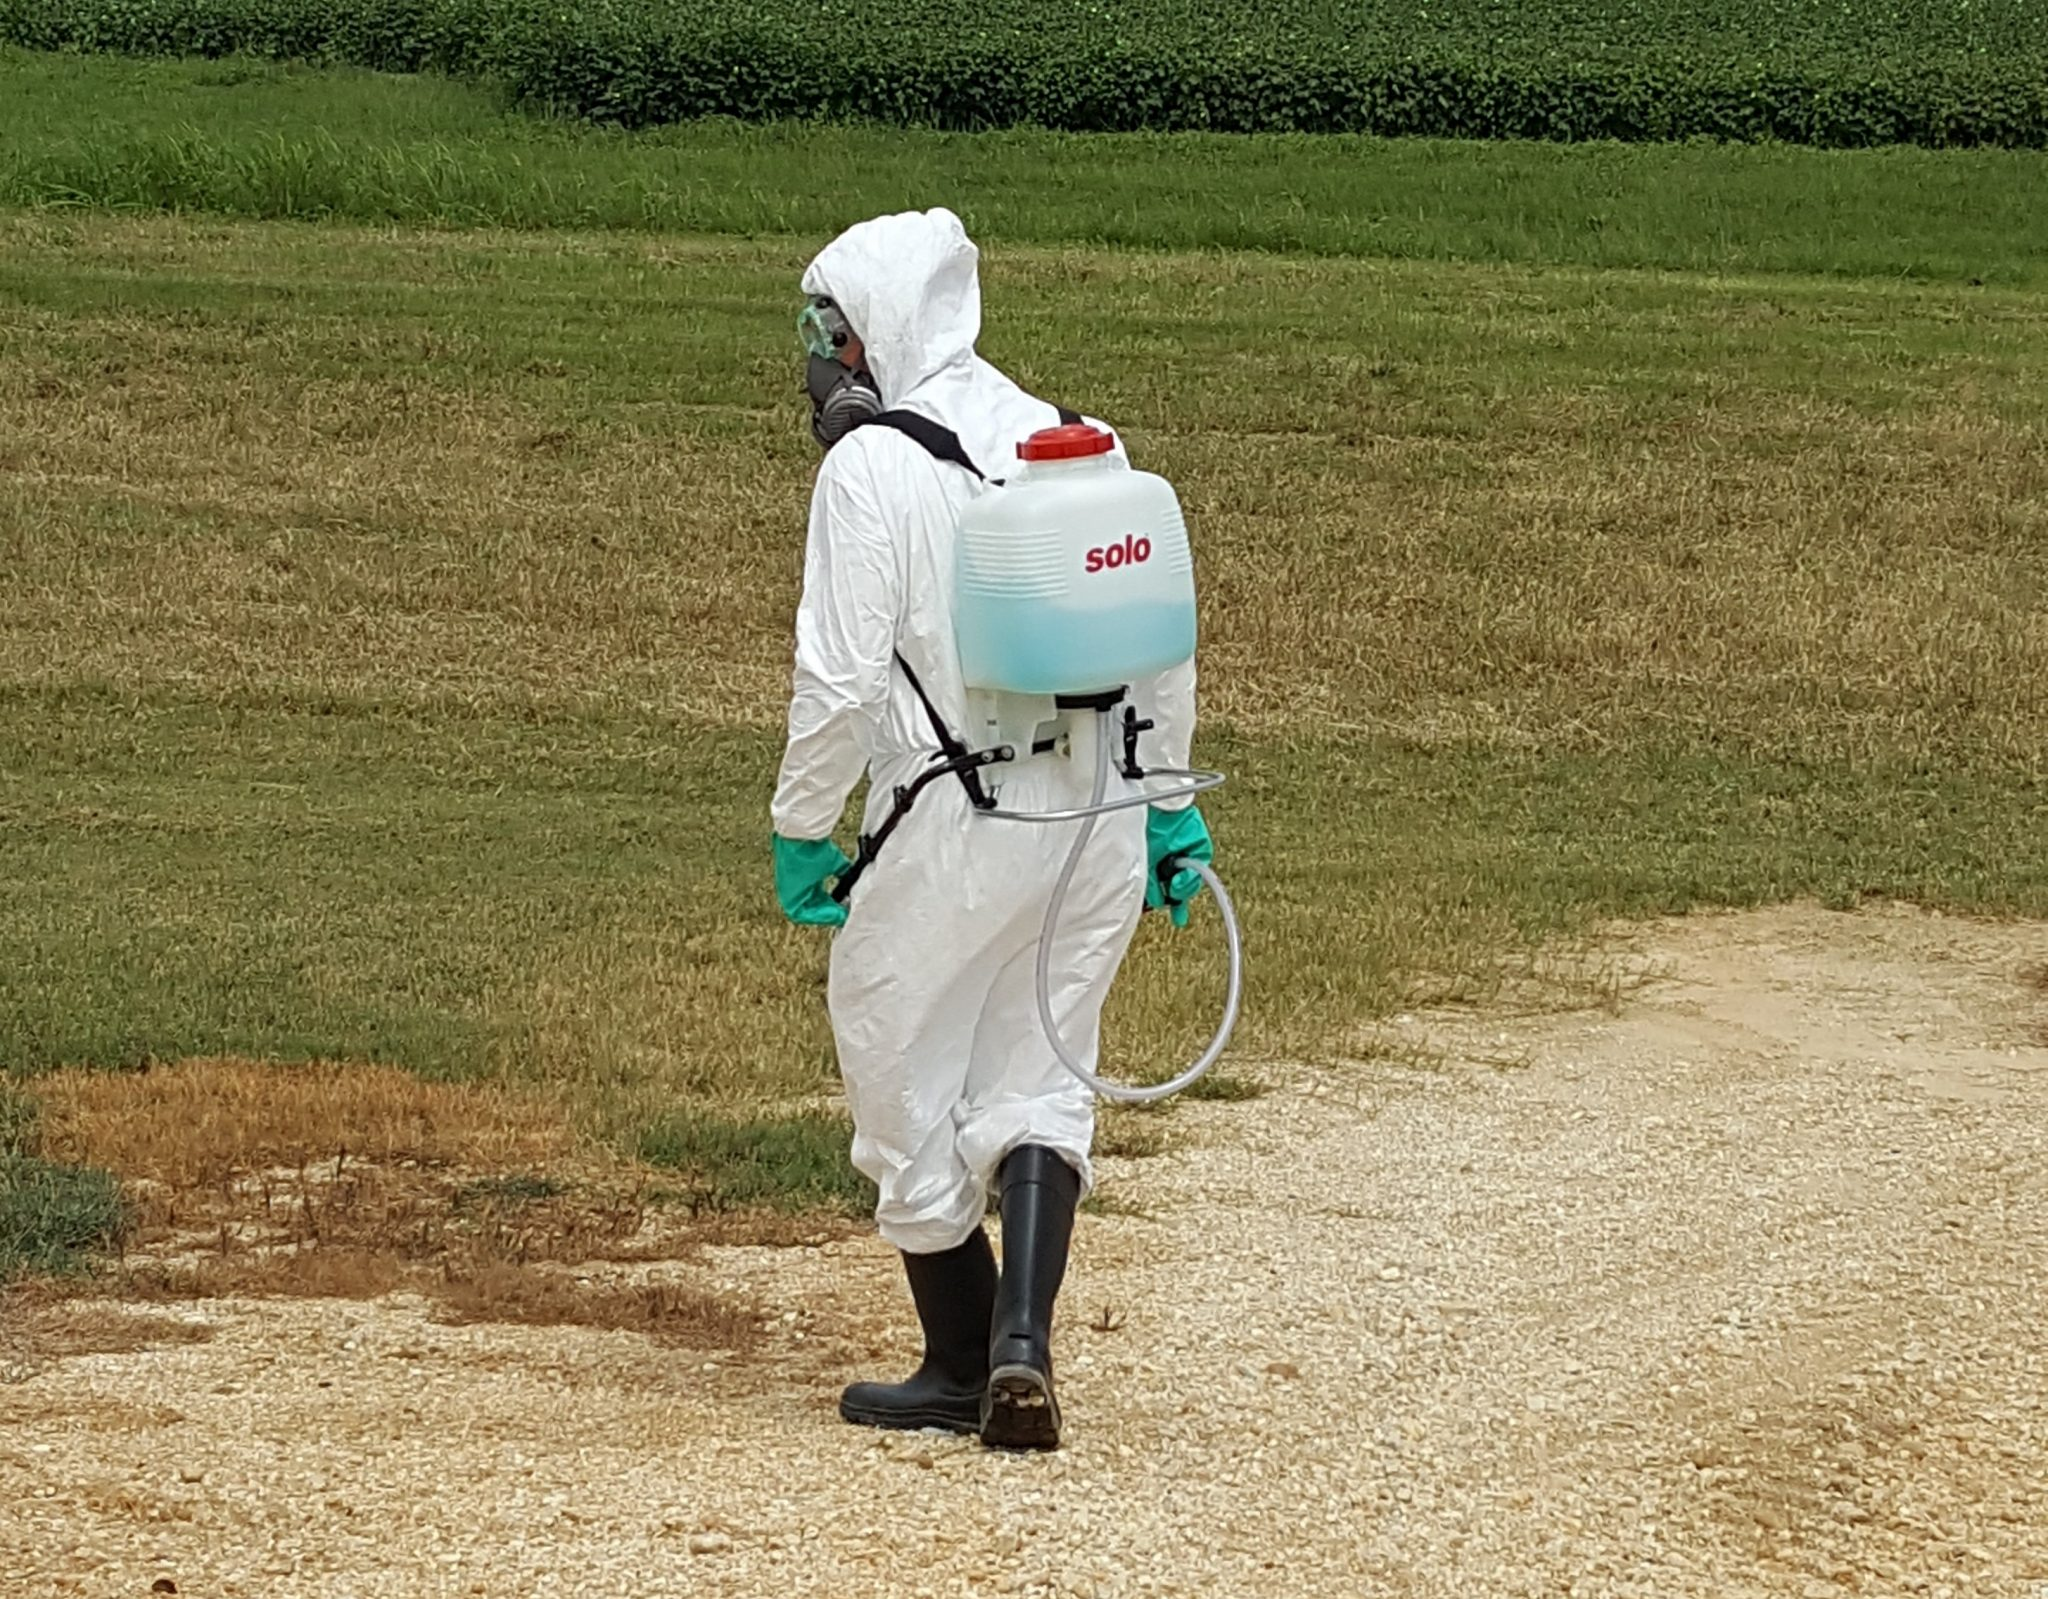 ully protected Applicator with spray backpack walking in a field.